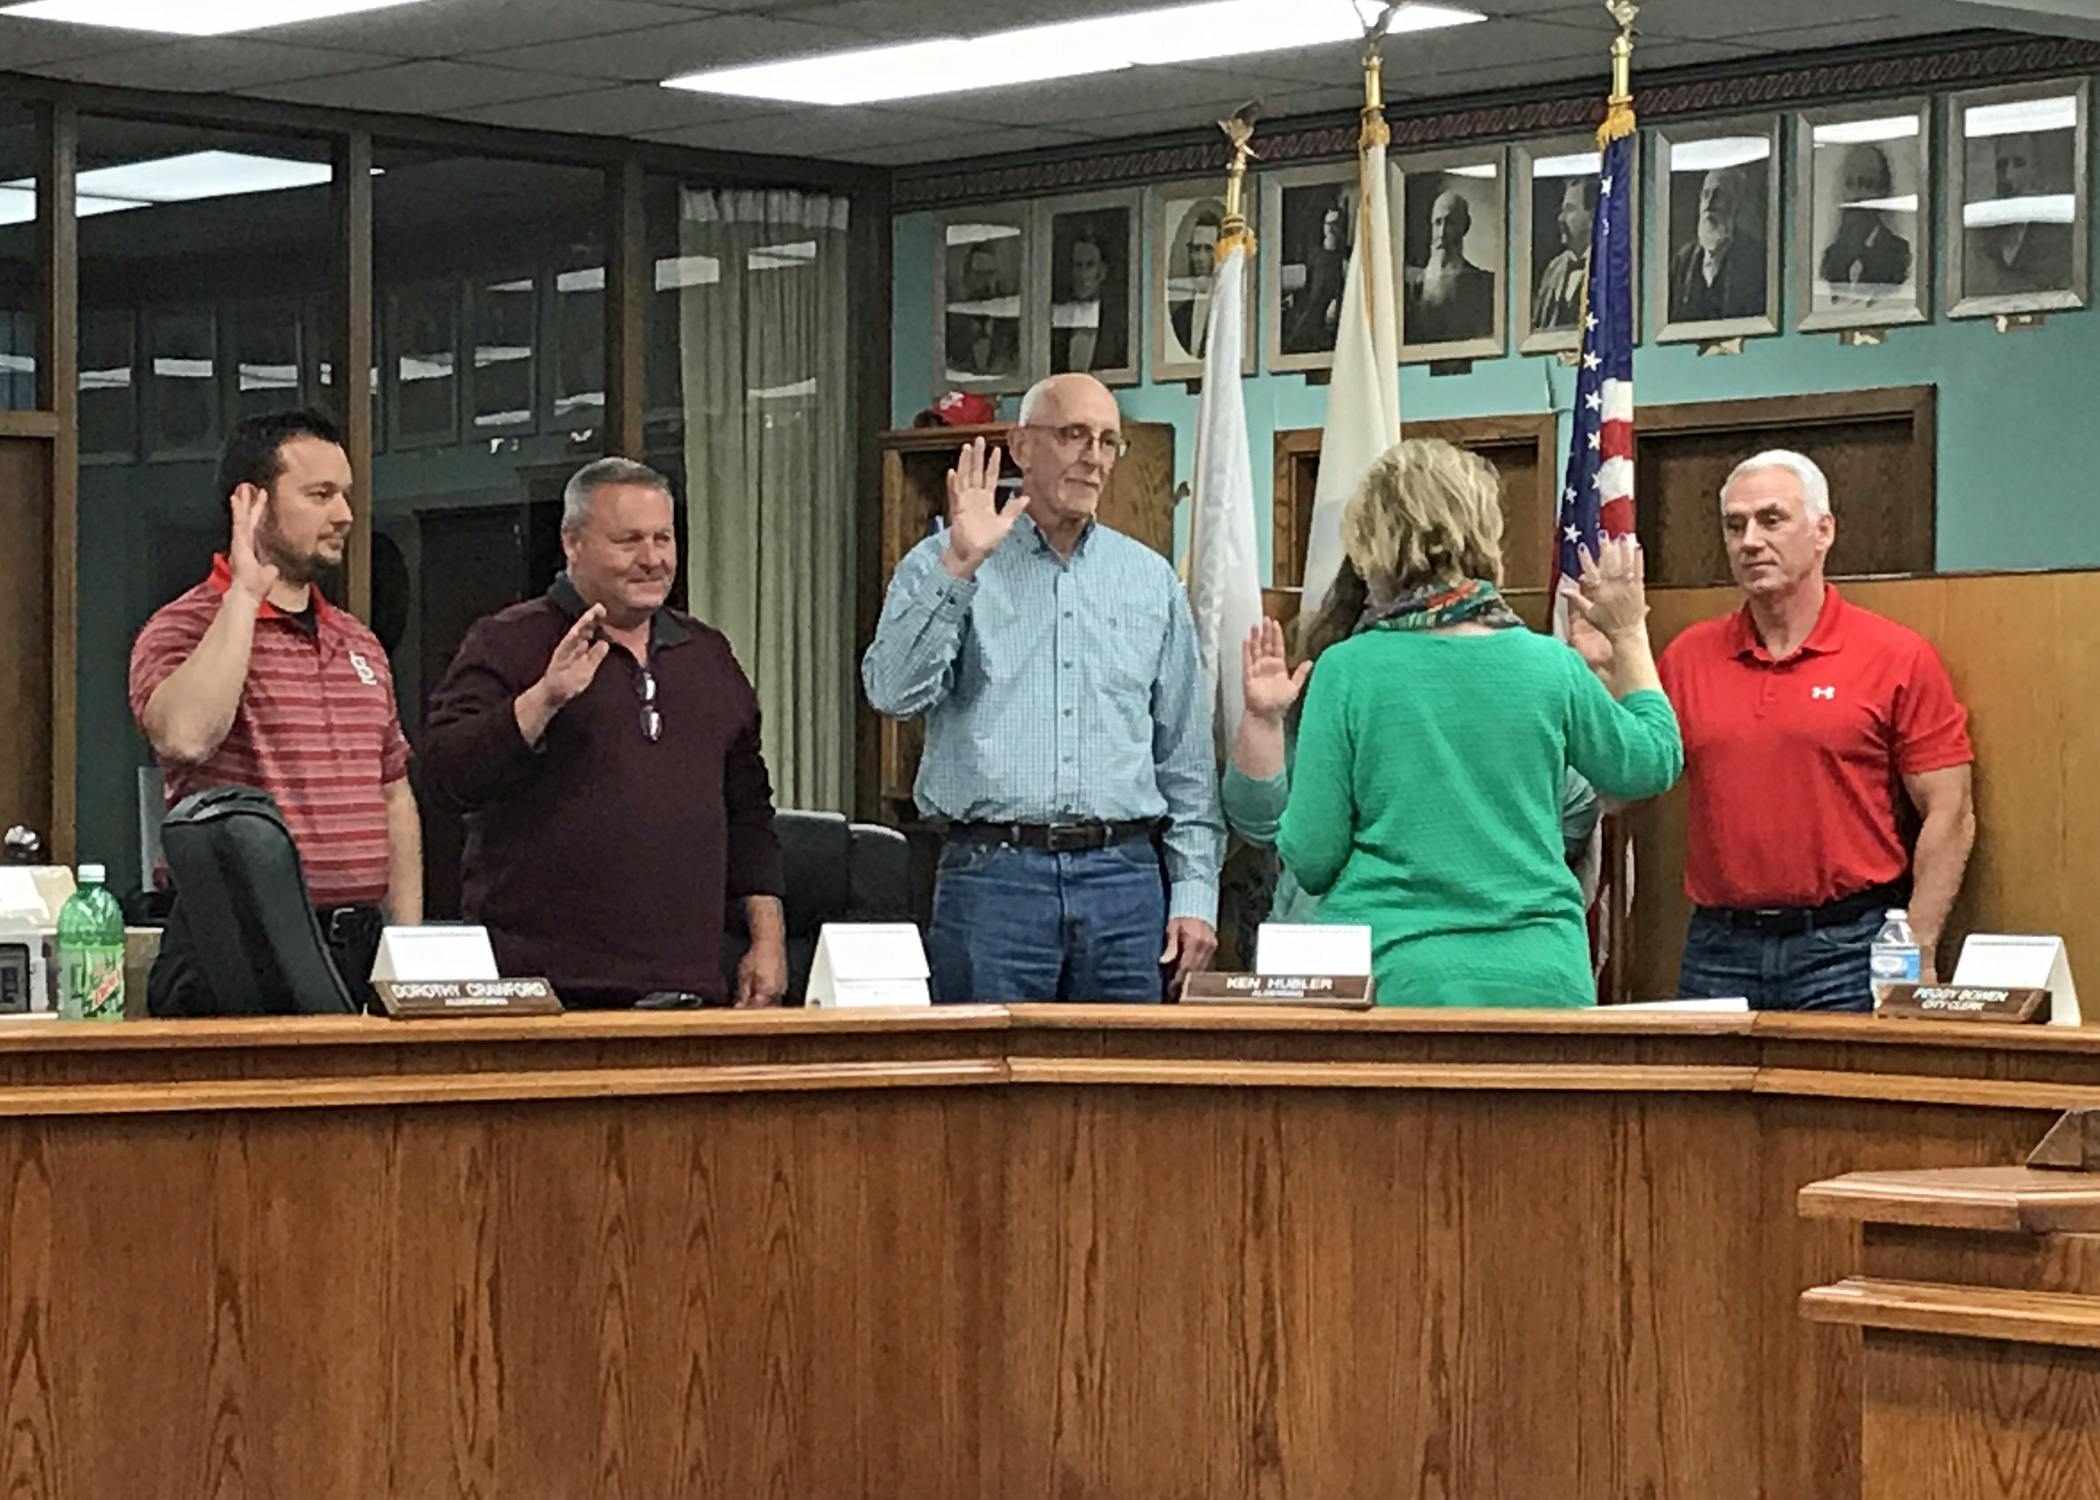 New Alderman and Re-Elected Council Members Sworn In